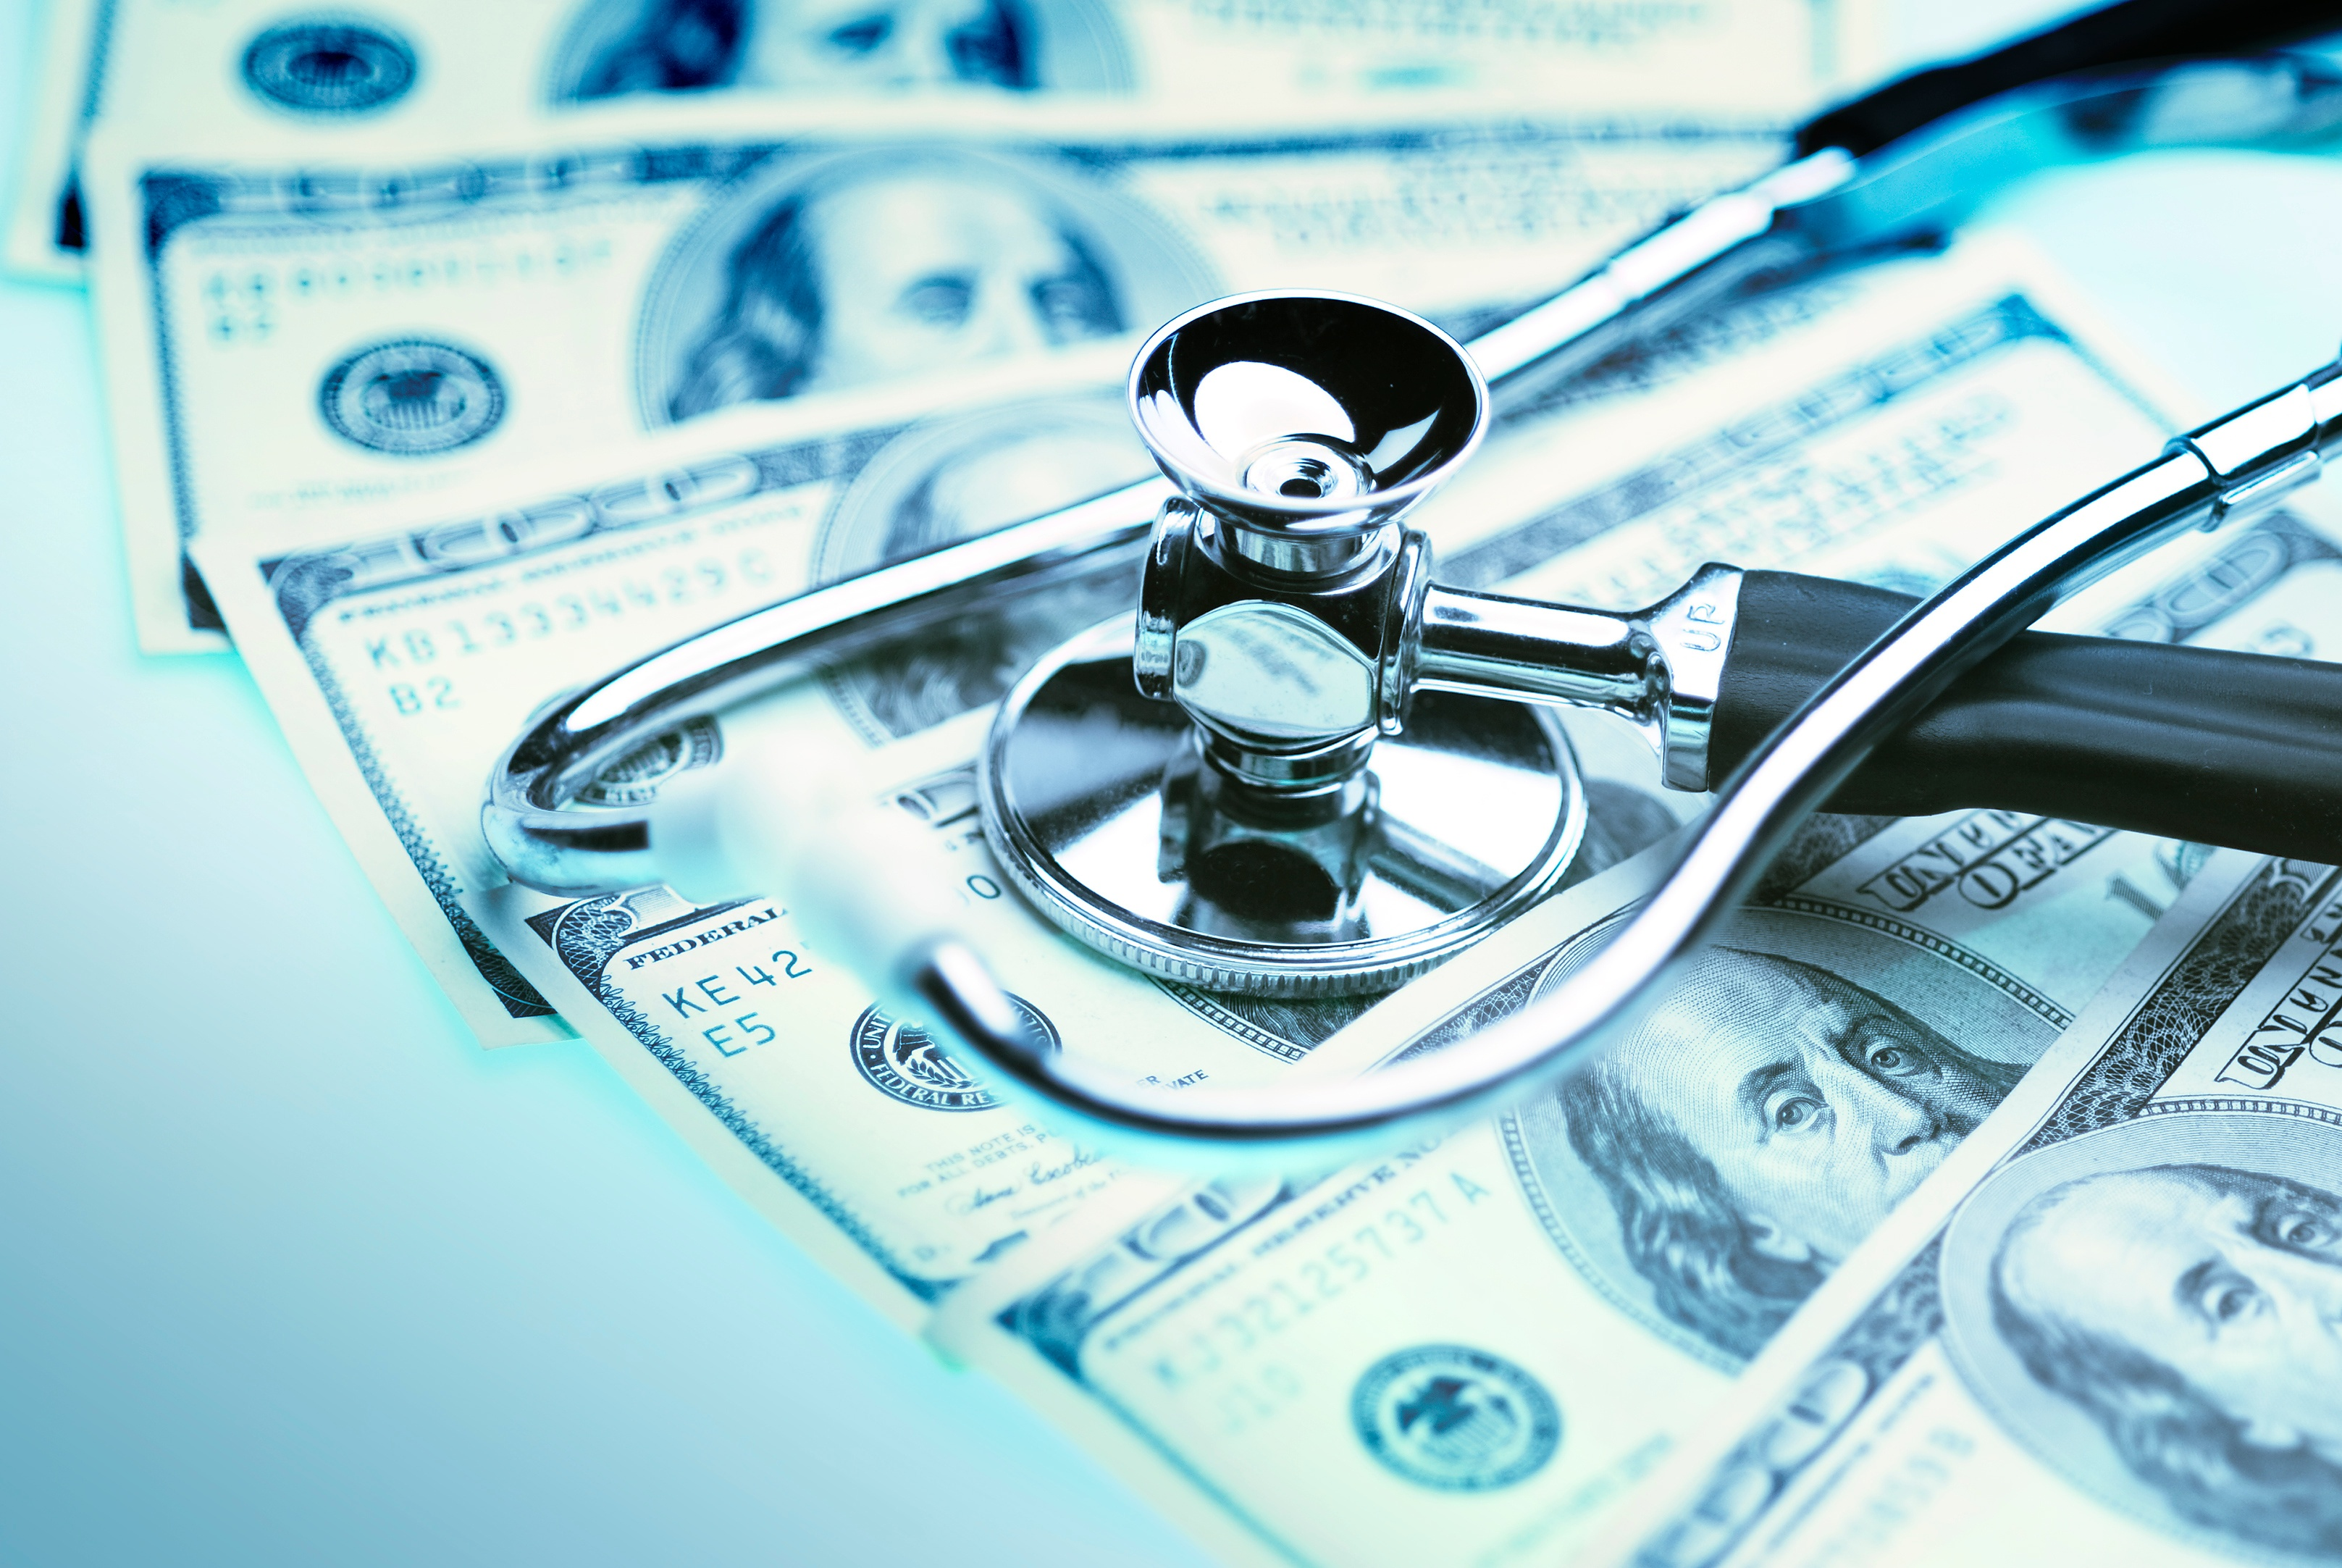 dollars-and-stethoscope-iStock-167248933